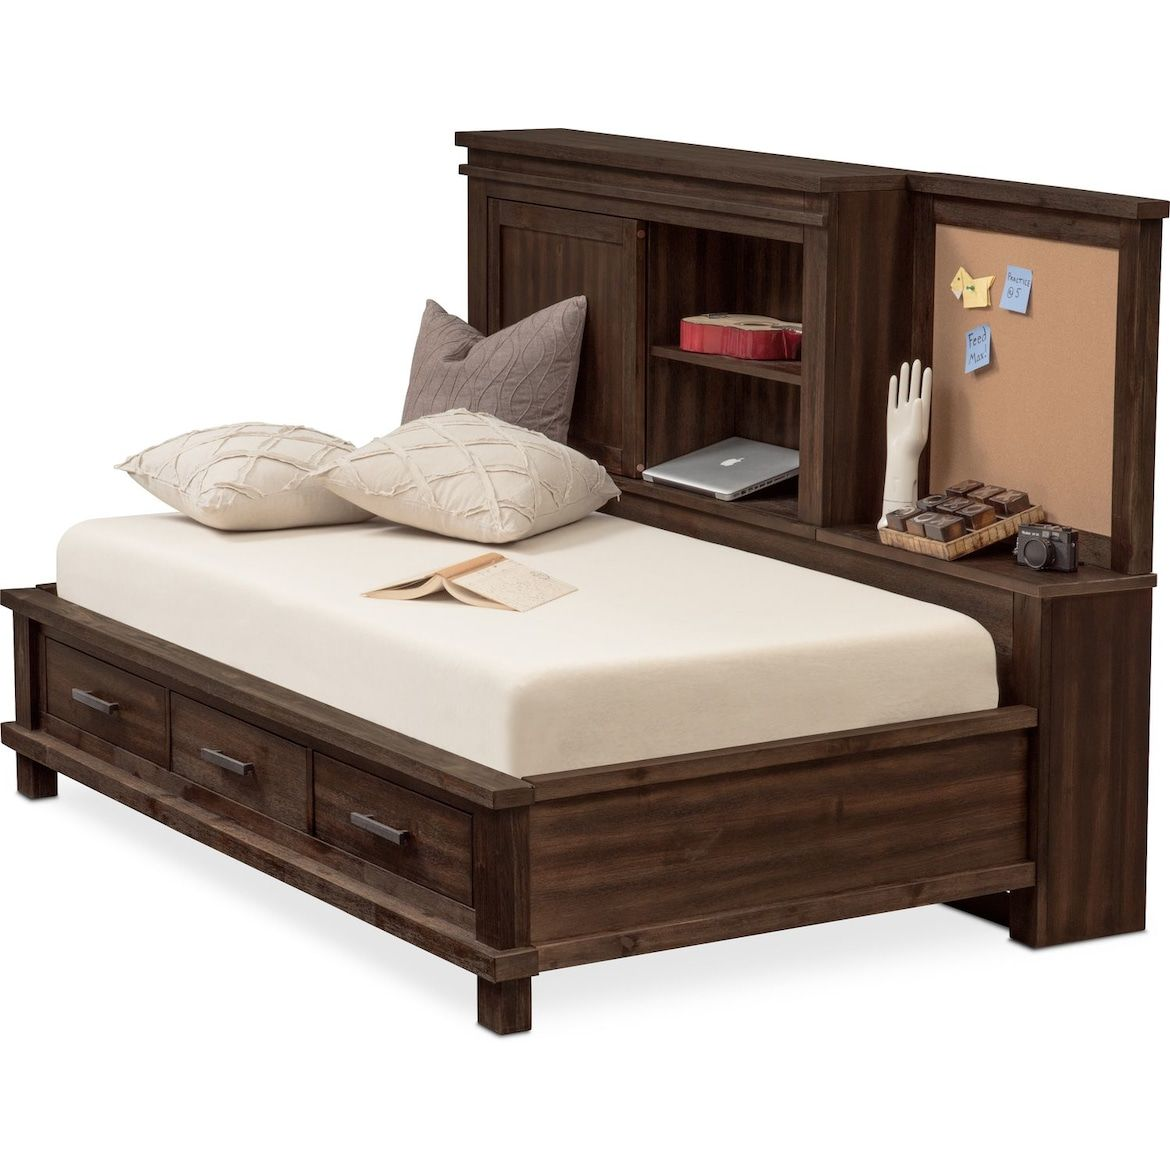 Tribeca Lounge Storage Bed in 2020 Value city furniture